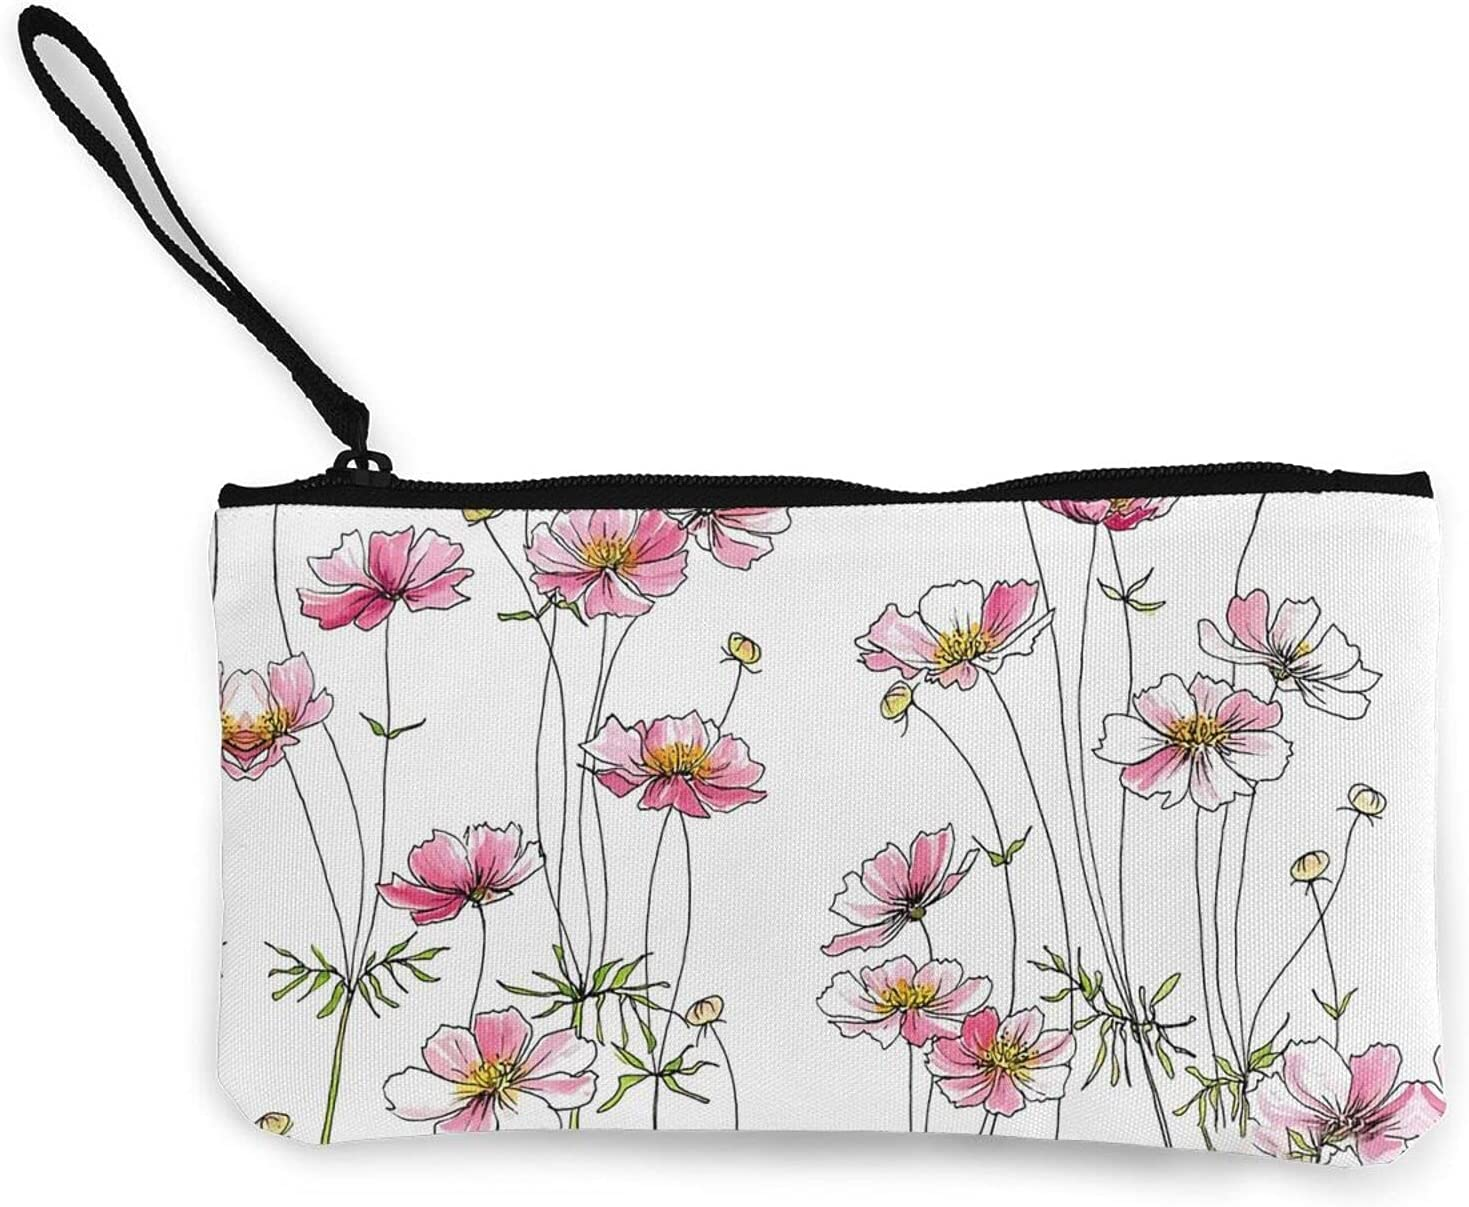 Pink Cosmos Flowers Zipper Pouch/ Canvas Coin Purse Wallet/ Cute Mini Change Wallet For Women/ Pouch Card Holder Phone Storage Bag